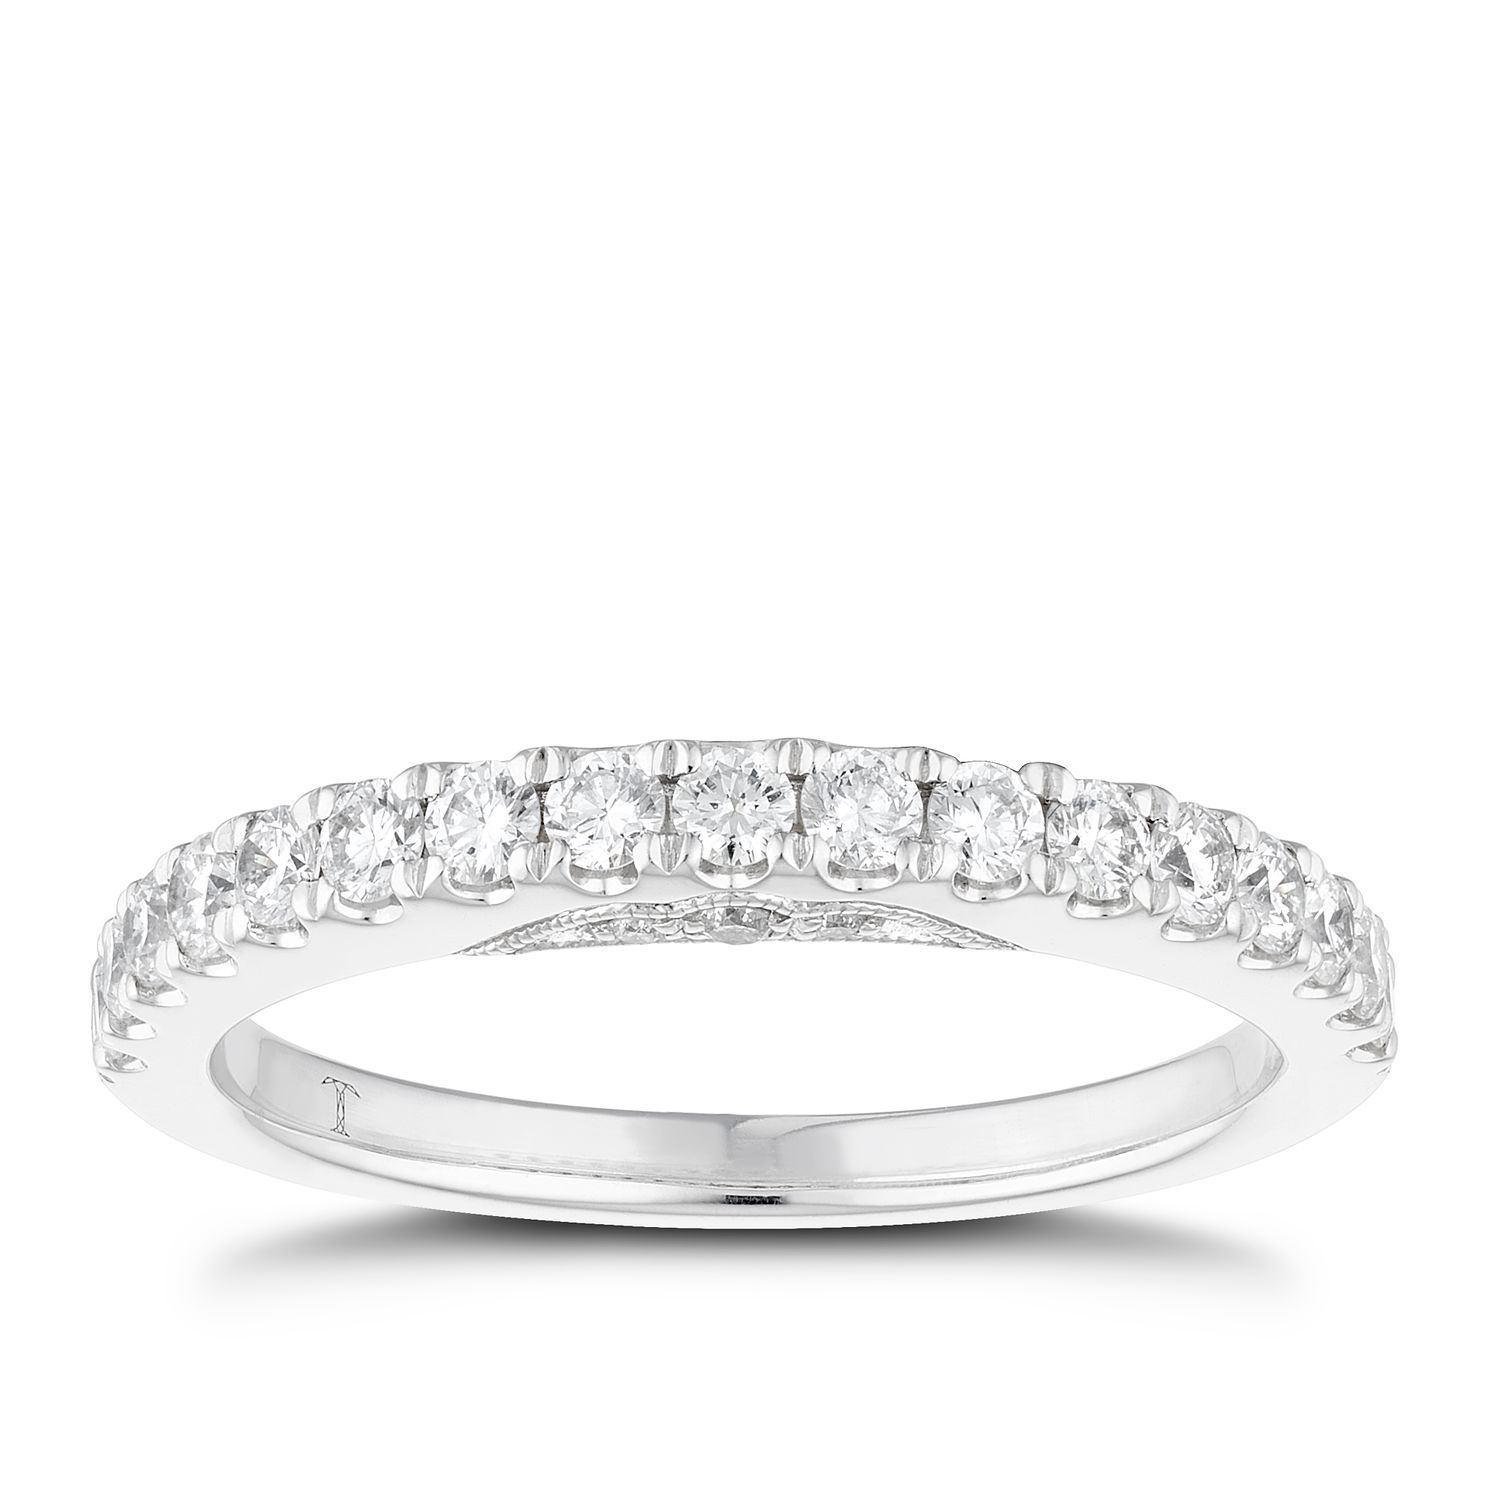 Tolkowsky 18ct White Gold 1/2ct Diamond Wedding Band - Product number 4554590